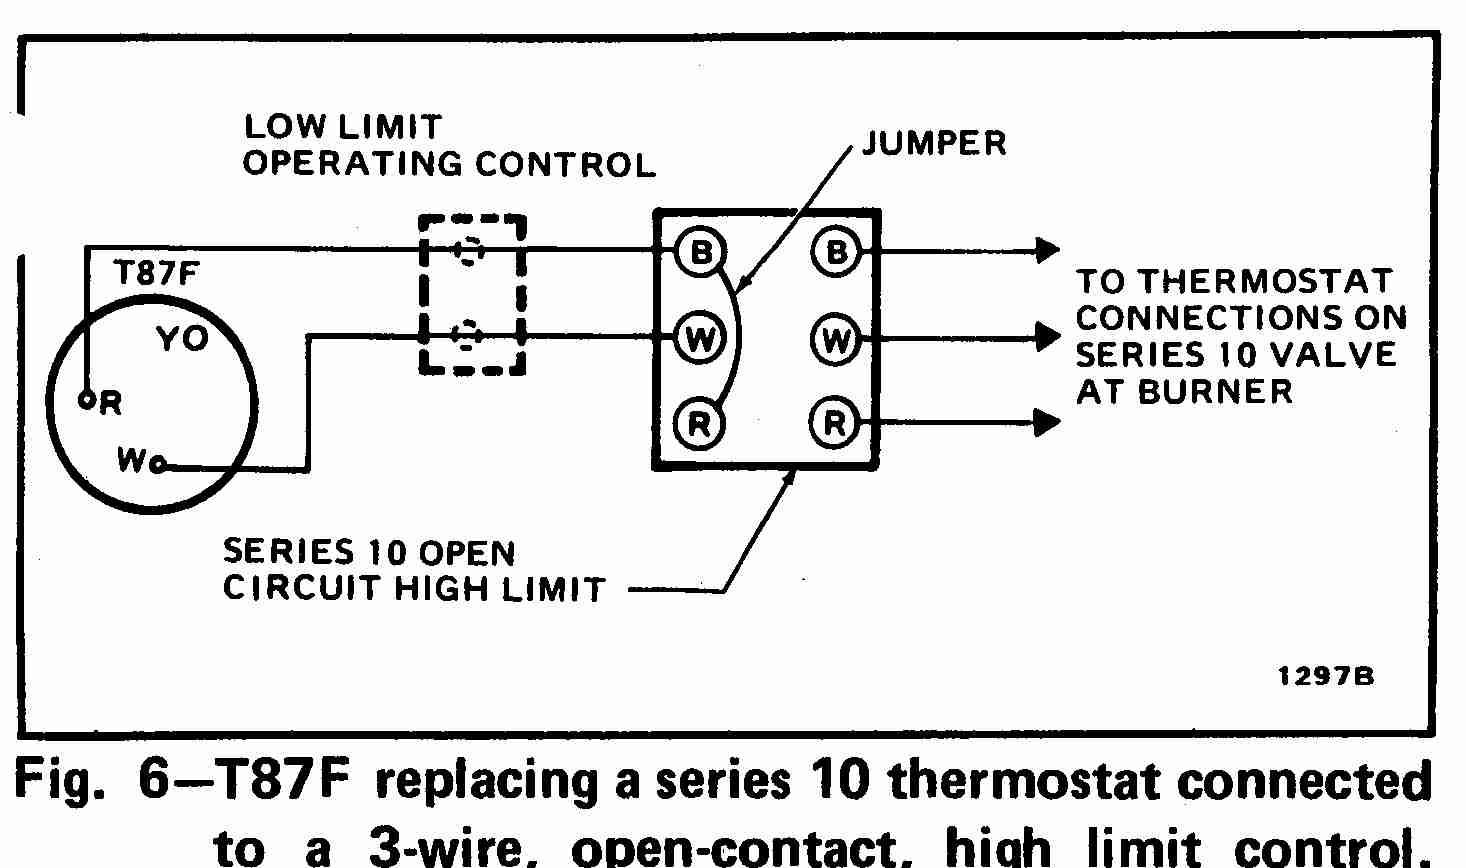 TT_T87F_0002_3WHL_DJF room thermostat wiring diagrams for hvac systems honeywell thermostat wiring diagram 4 wire at gsmx.co